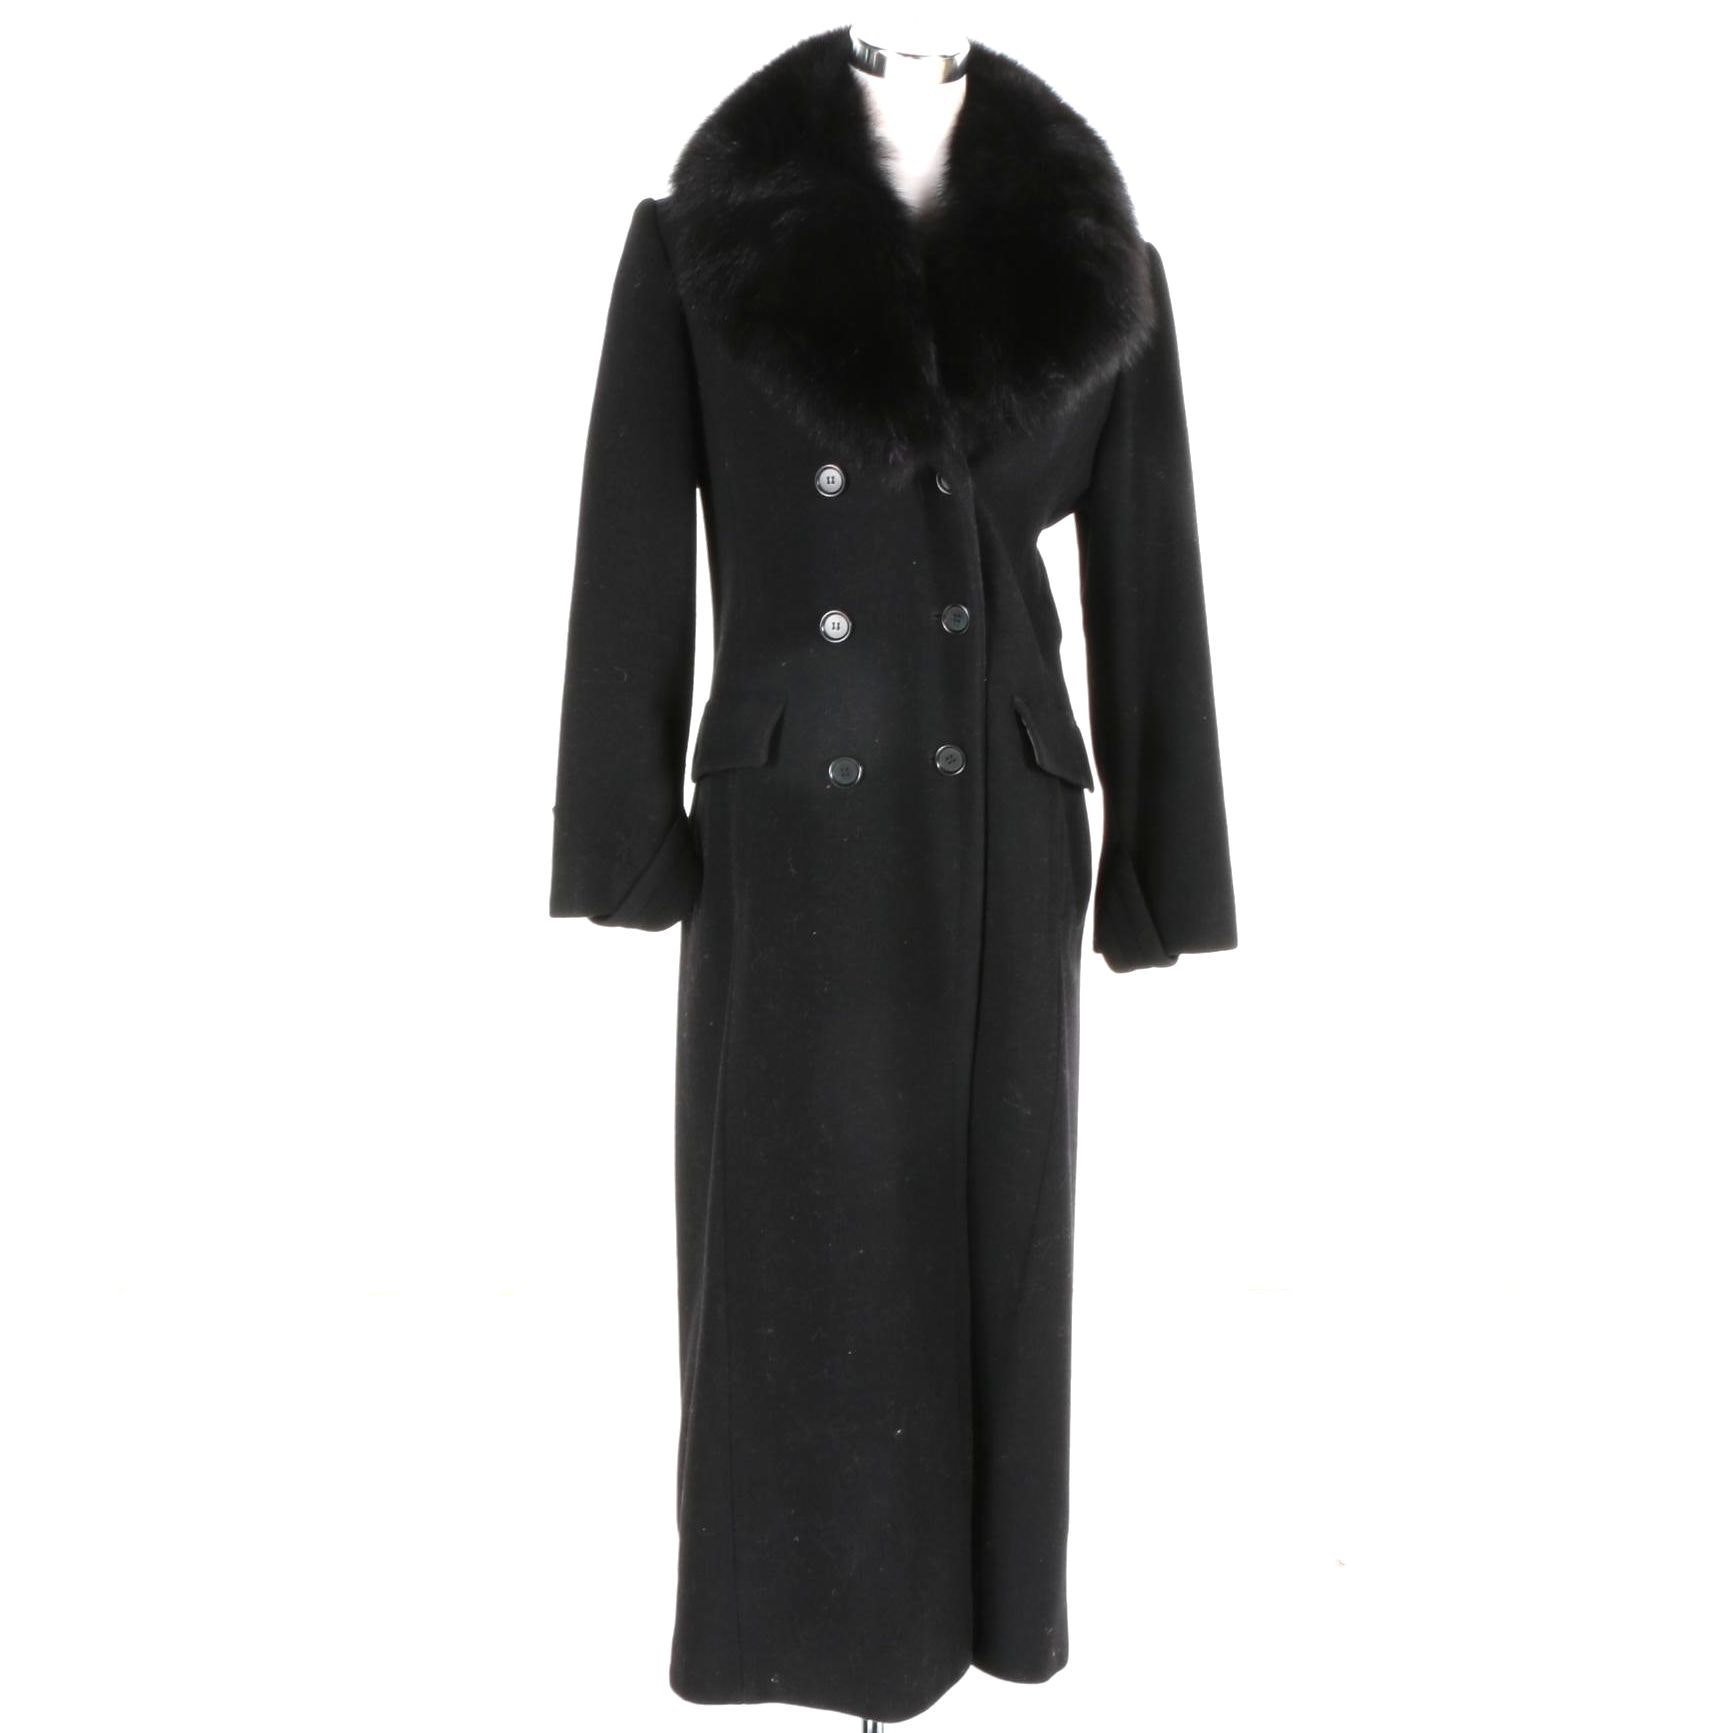 Omón Wool and Cashmere Women's Coat